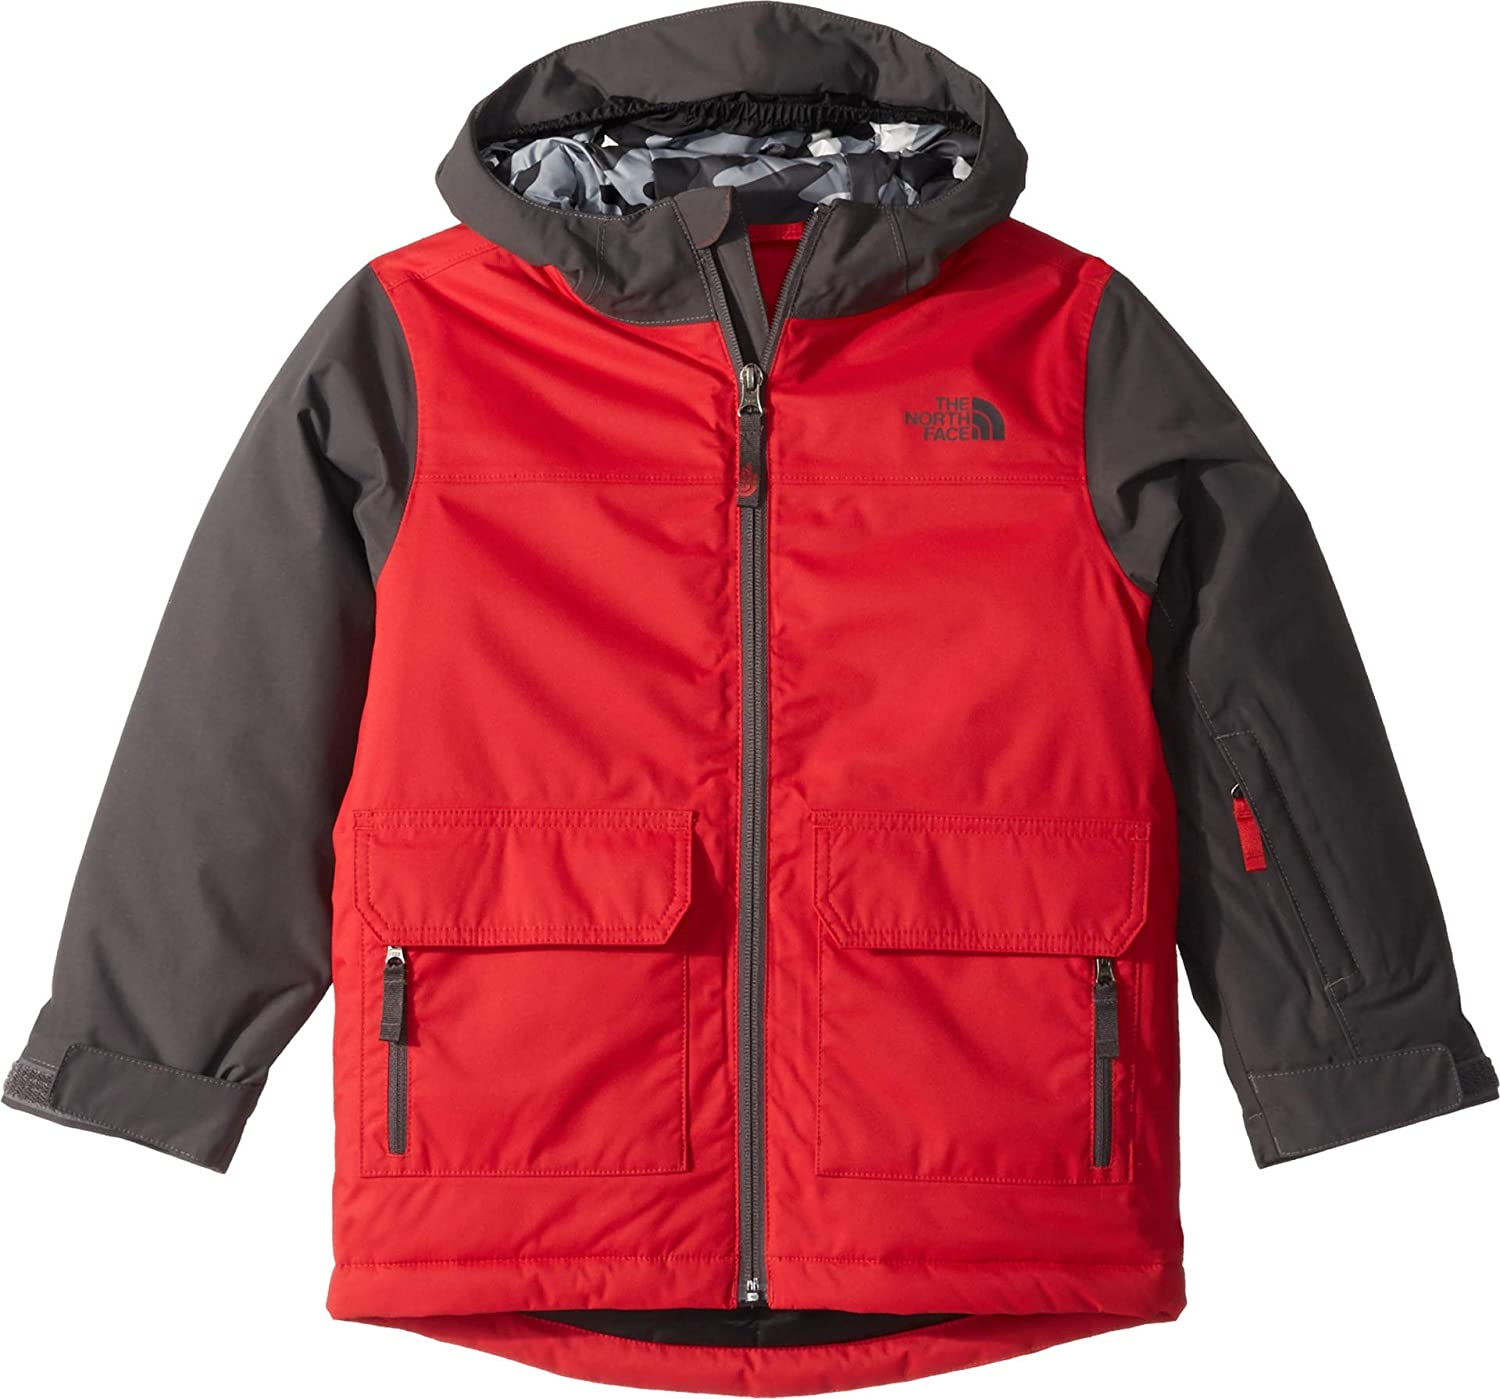 The North Face OUTERWEAR ボーイズ US サイズ: Small カラー: レッド